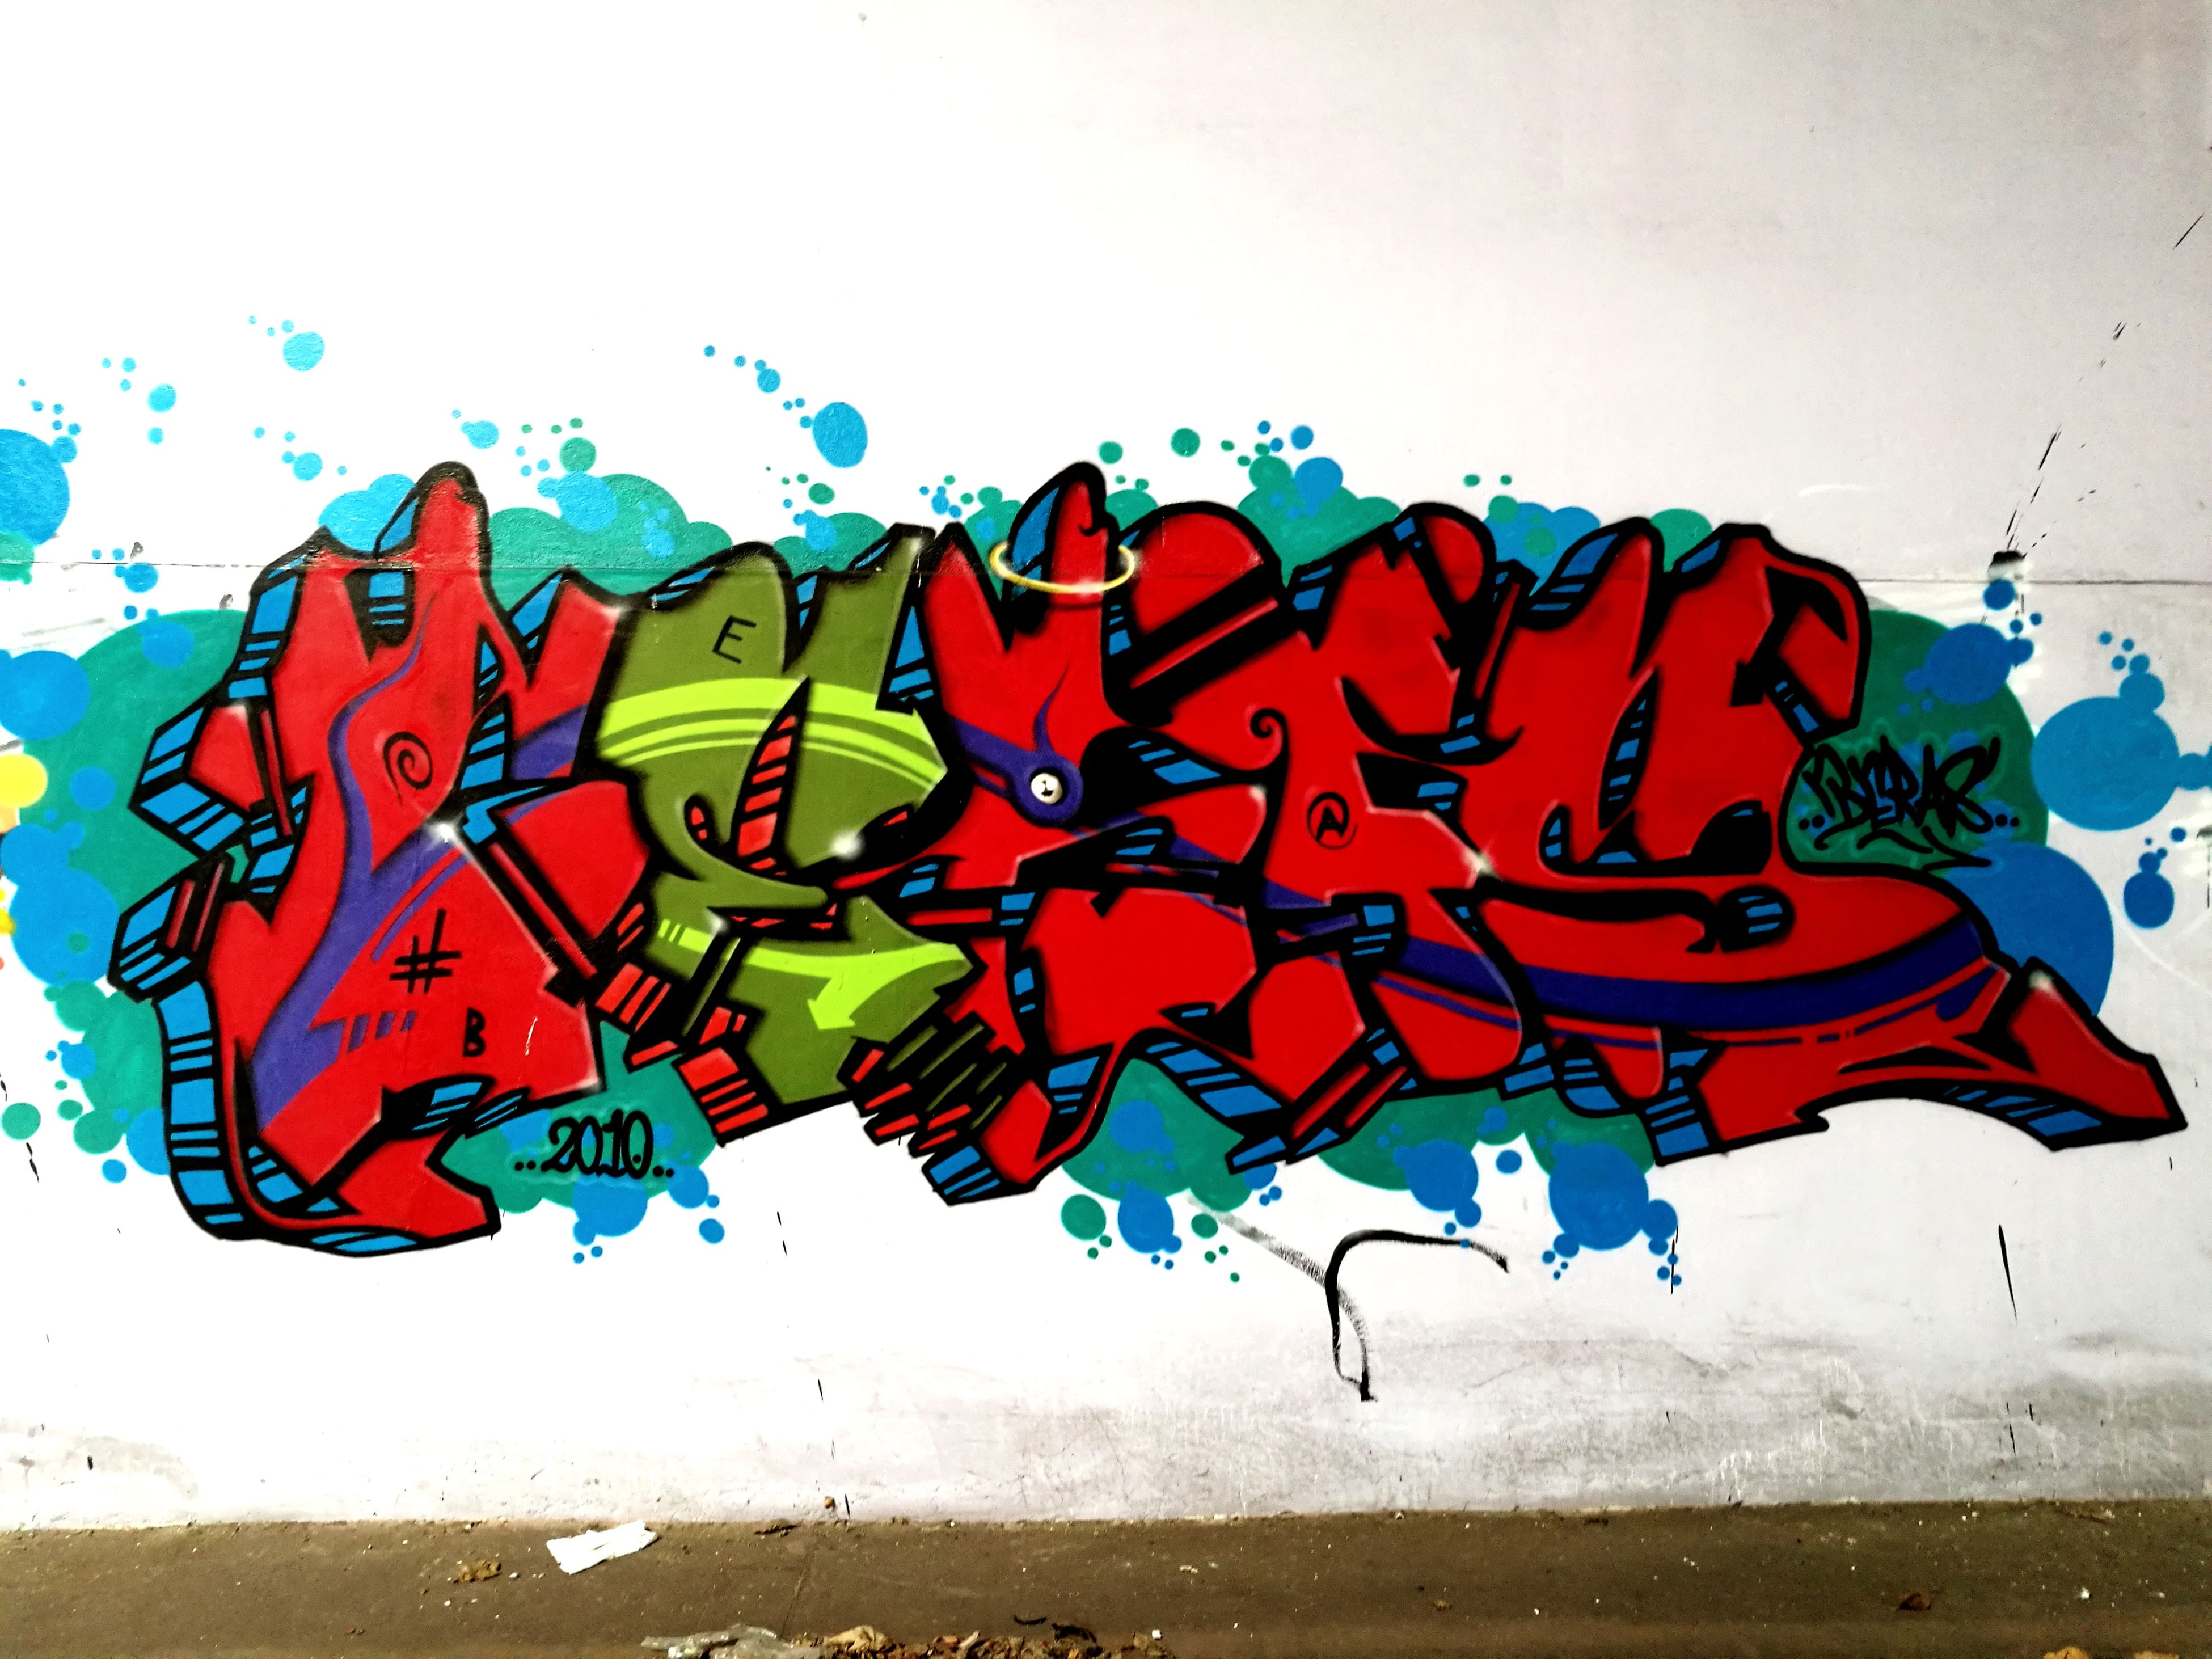 art and craft, creativity, graffiti, multi colored, paint, no people, outdoors, day, white background, close-up, sky